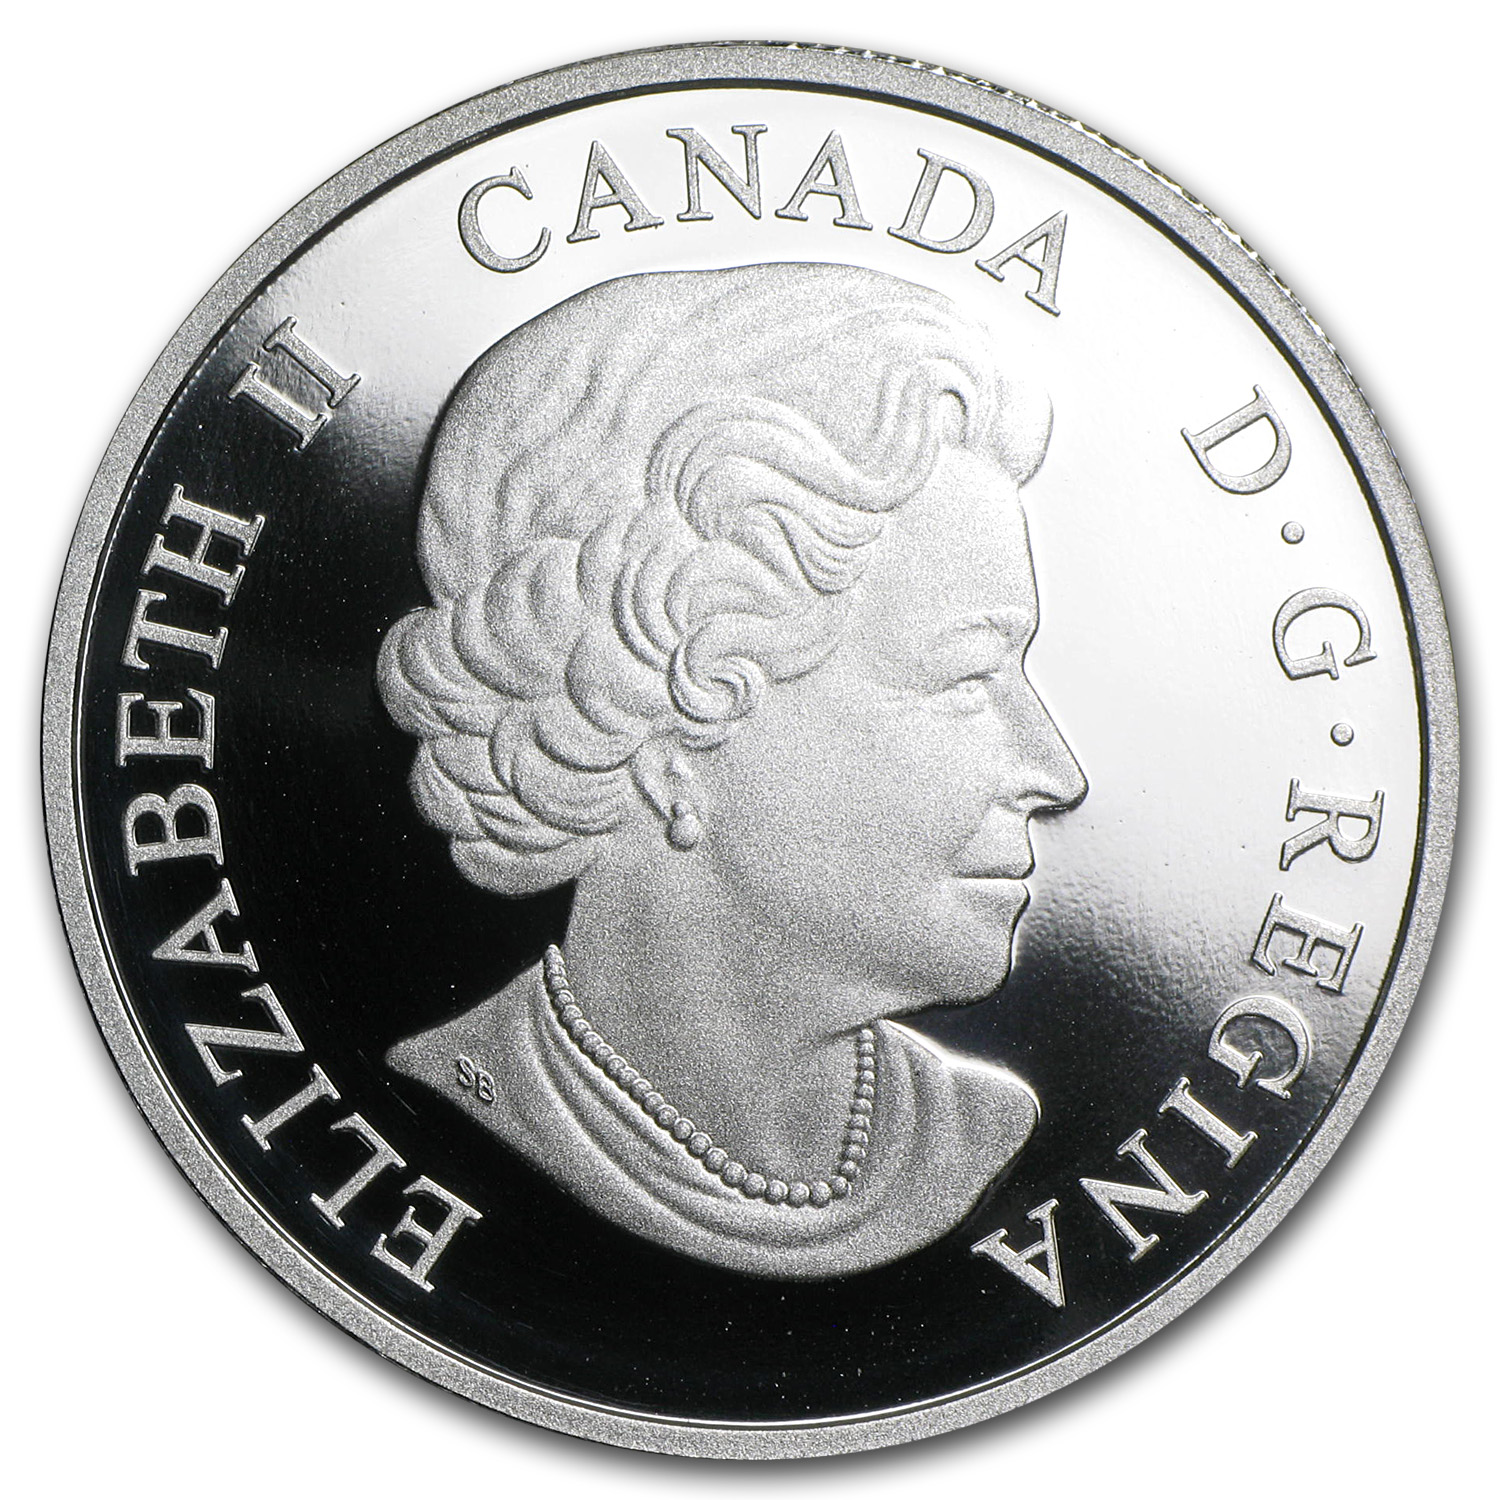 2014 1 oz Silver Canadian $20 Coin - Iconic Polar Bear